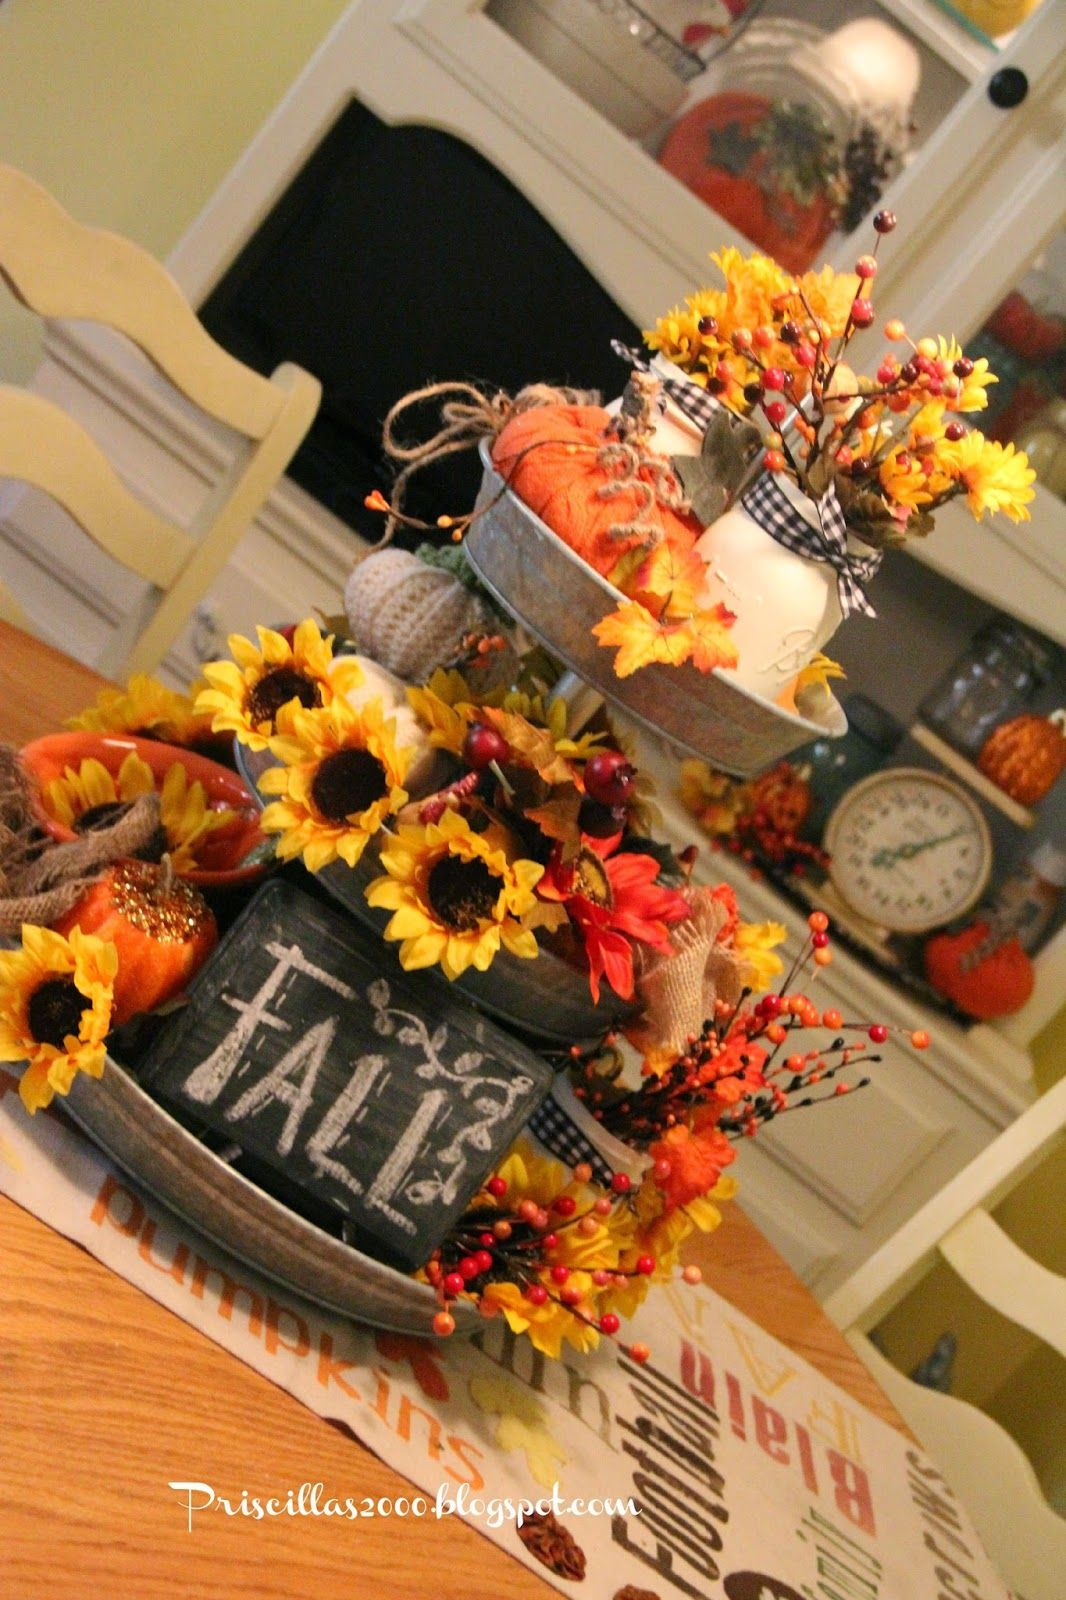 I am still loving this galvanized tray I got from Sam's club ! I have dressed it up for Fall     with sunflowers , fall berries and leav...